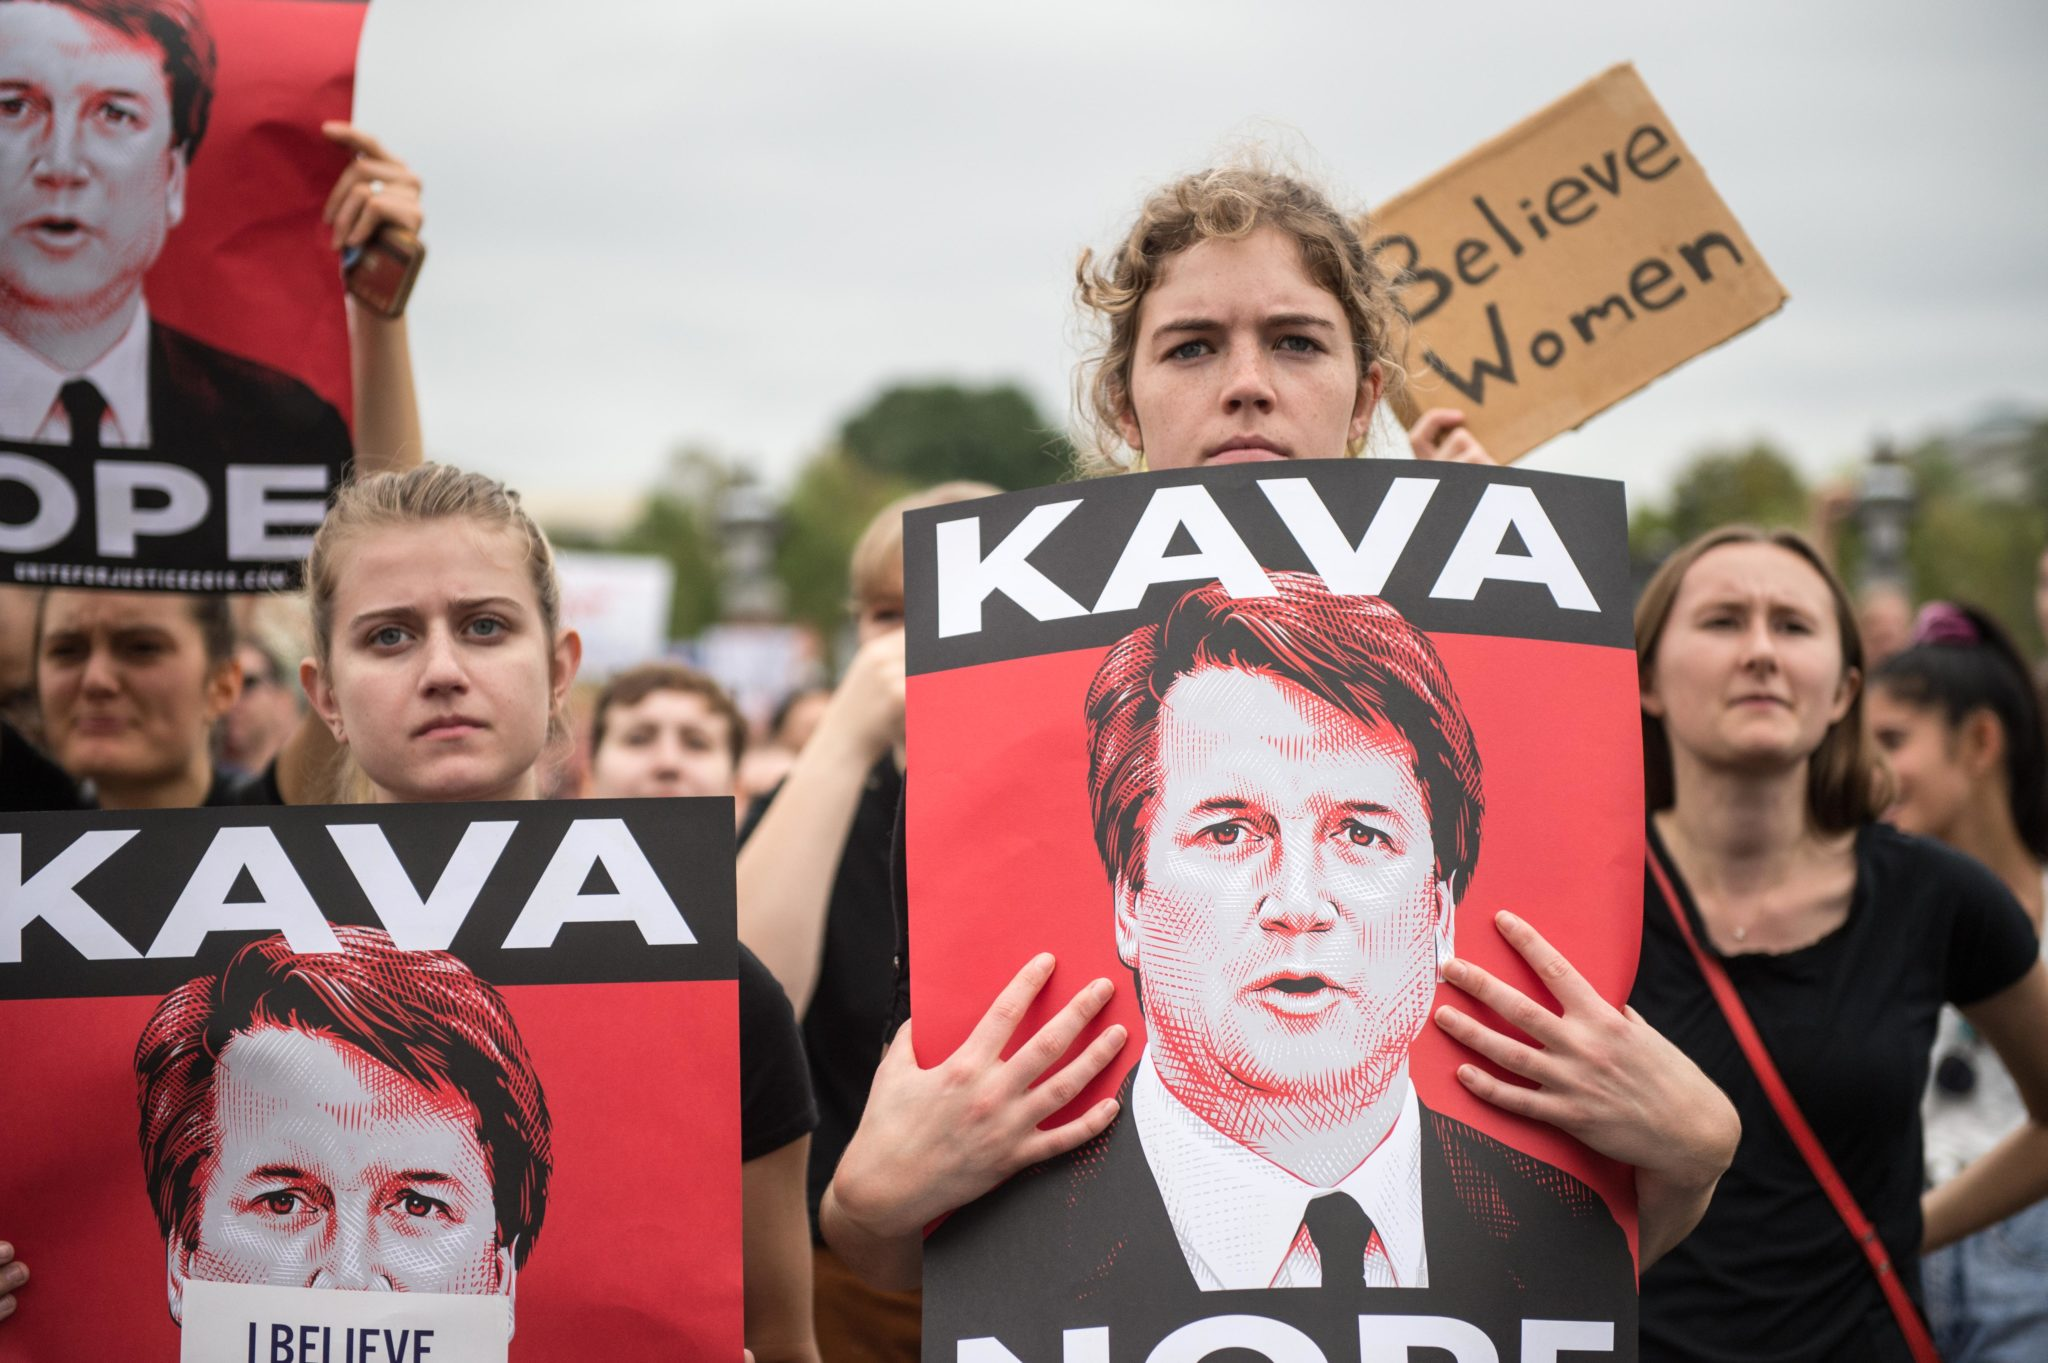 TOPSHOT - Women demonstrators protest against the appointment of Supreme Court nominee Brett Kavanaugh at the US Capitol in Washington DC, on October 6, 2018. - The US Senate confirmed conservative judge Kavanaugh as the next Supreme Court justice on October 6, offering US President Donald Trump a big political win and tilting the nation's high court decidedly to the right. (Photo by ROBERTO SCHMIDT / AFP) (Photo credit should read ROBERTO SCHMIDT/AFP/Getty Images)